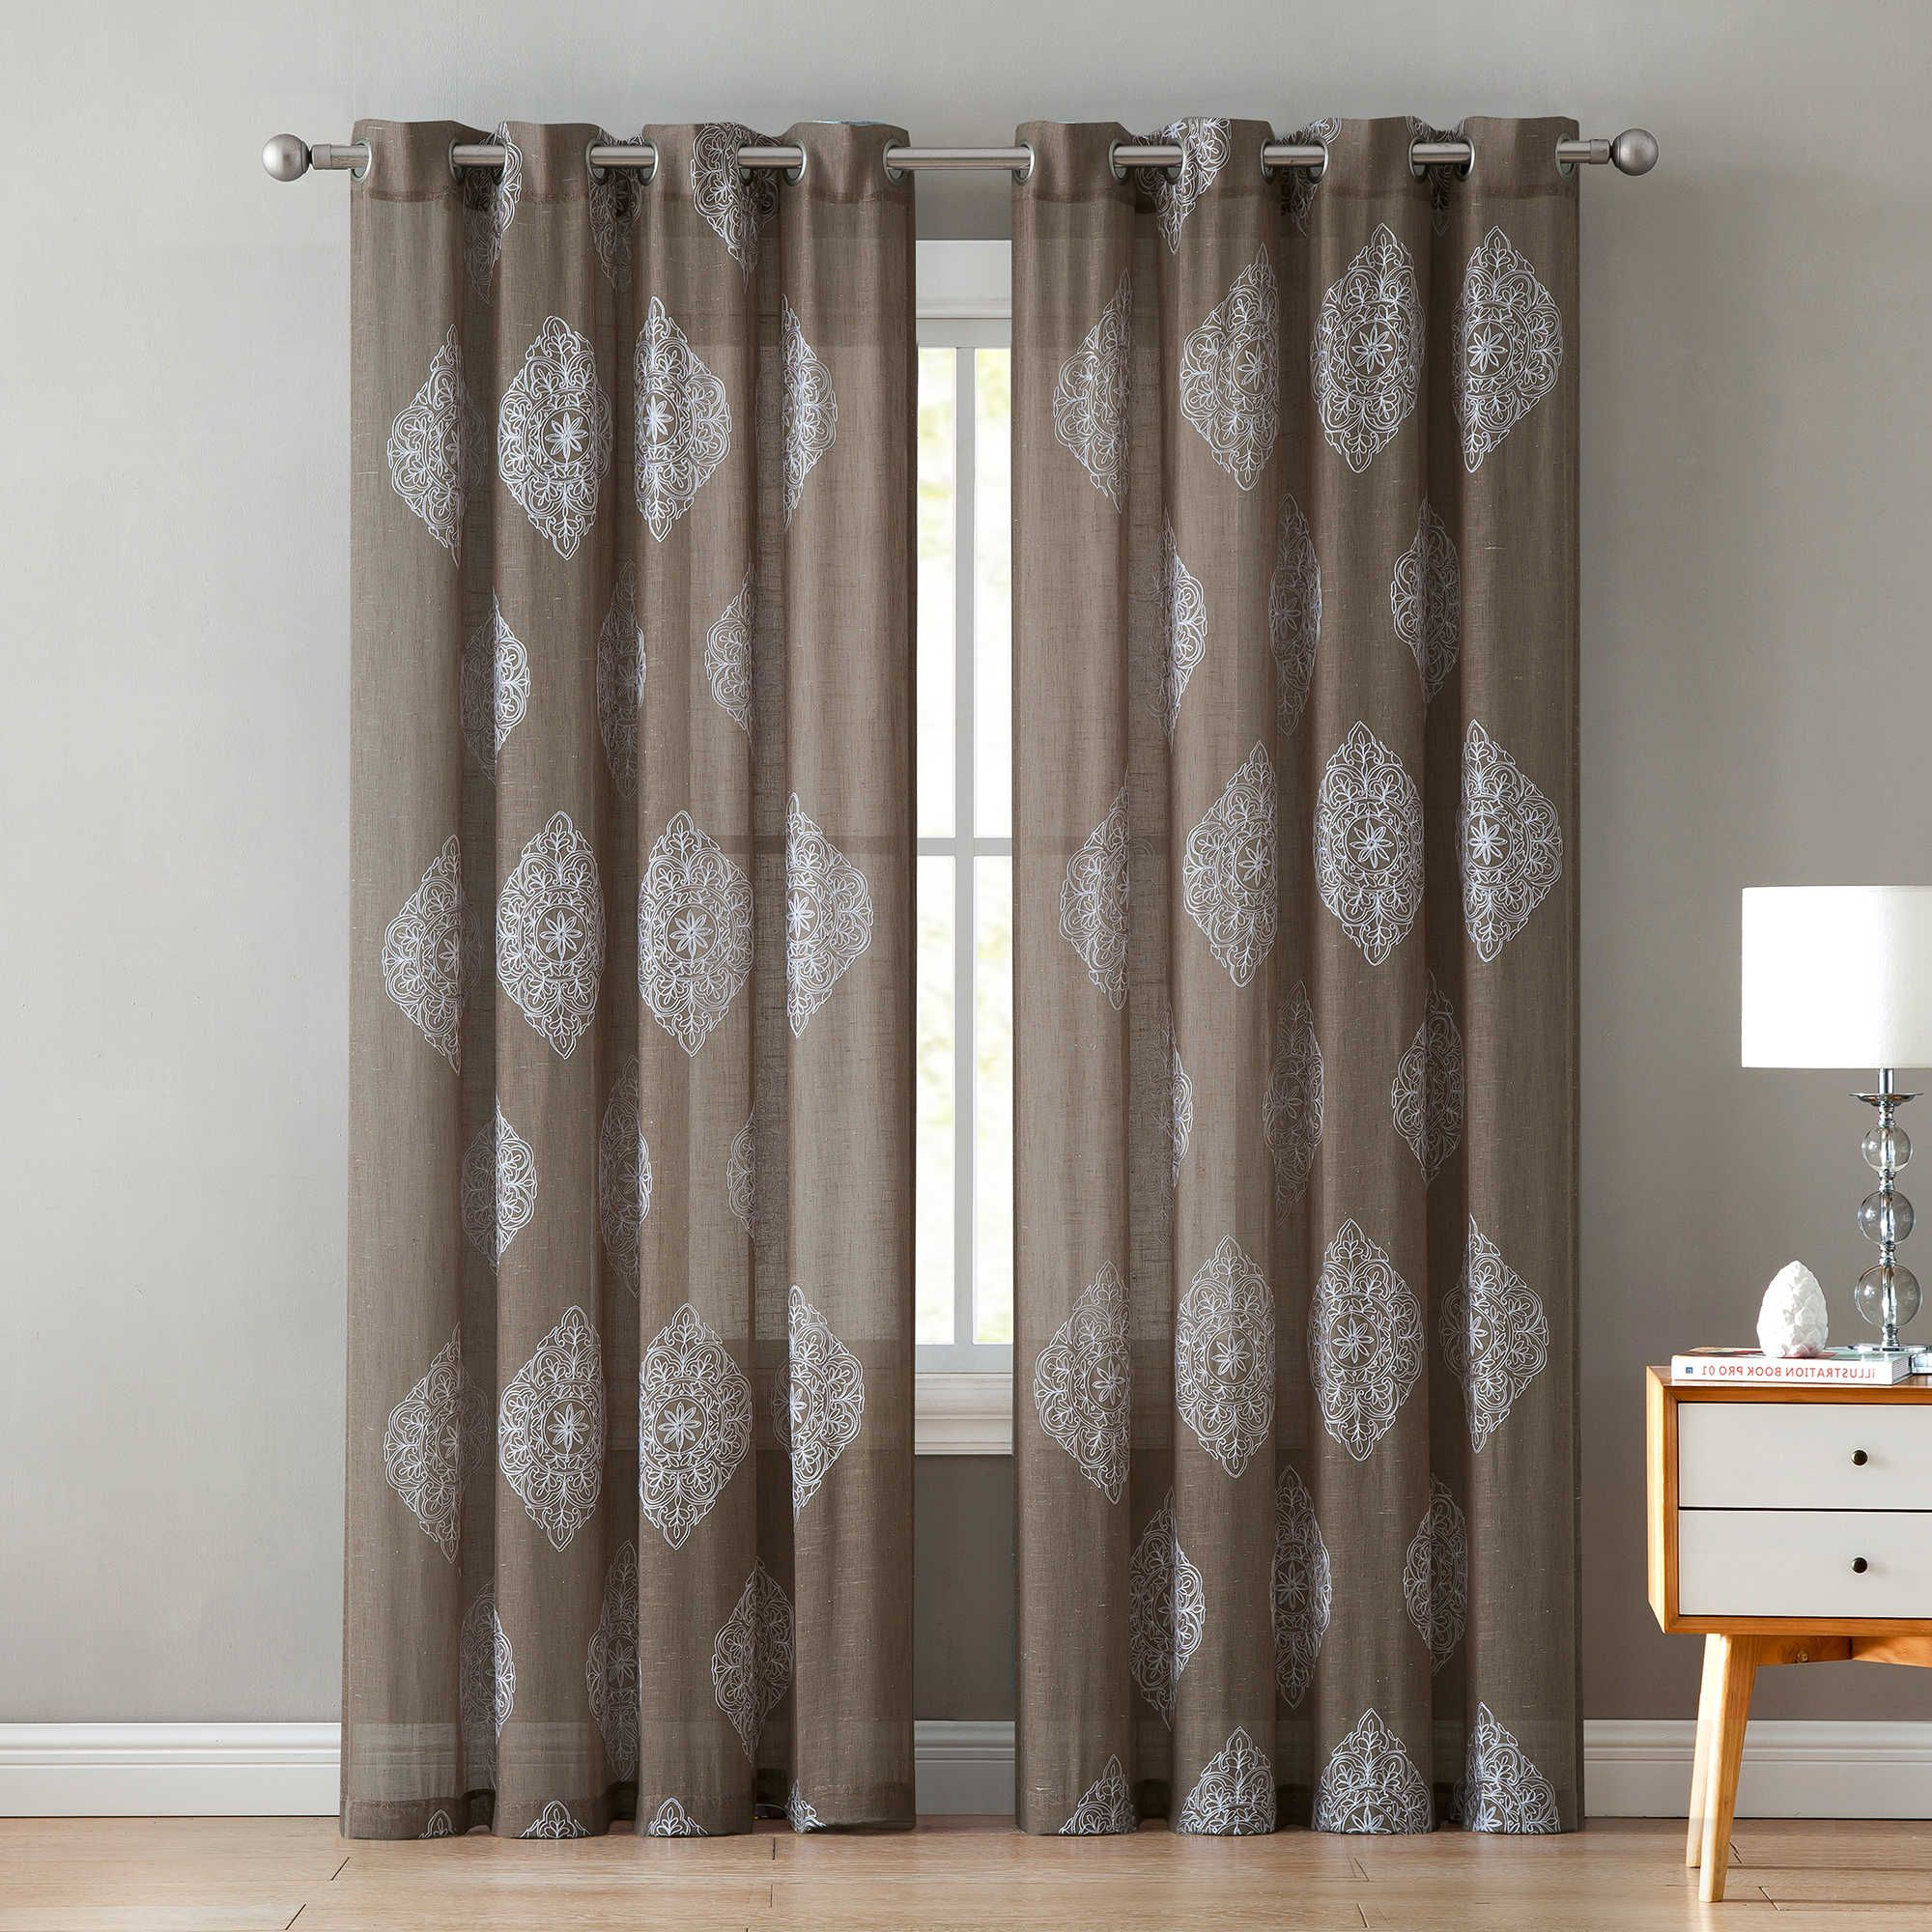 Essentials Almaden Fretwork Printed Grommet Top Curtain Panel Pairs Throughout 2021 Vcny Home Gemma 84 Inch Grommet Top Window Curtain Panel In (View 14 of 20)